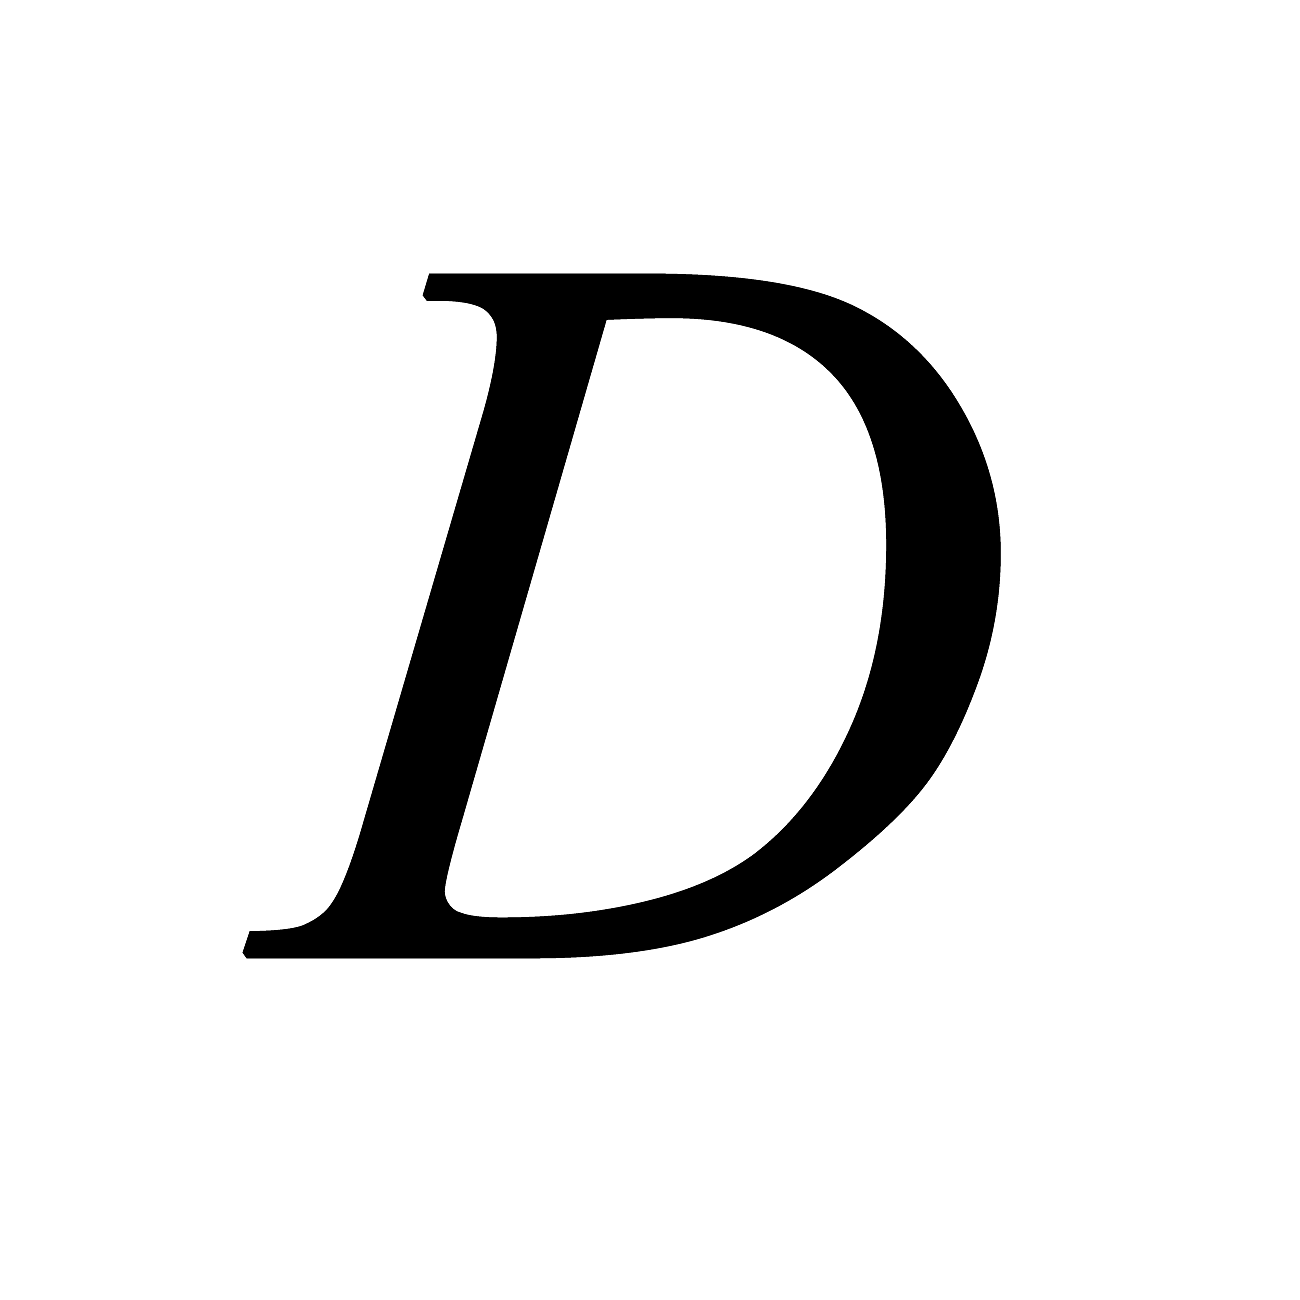 White letter d png.